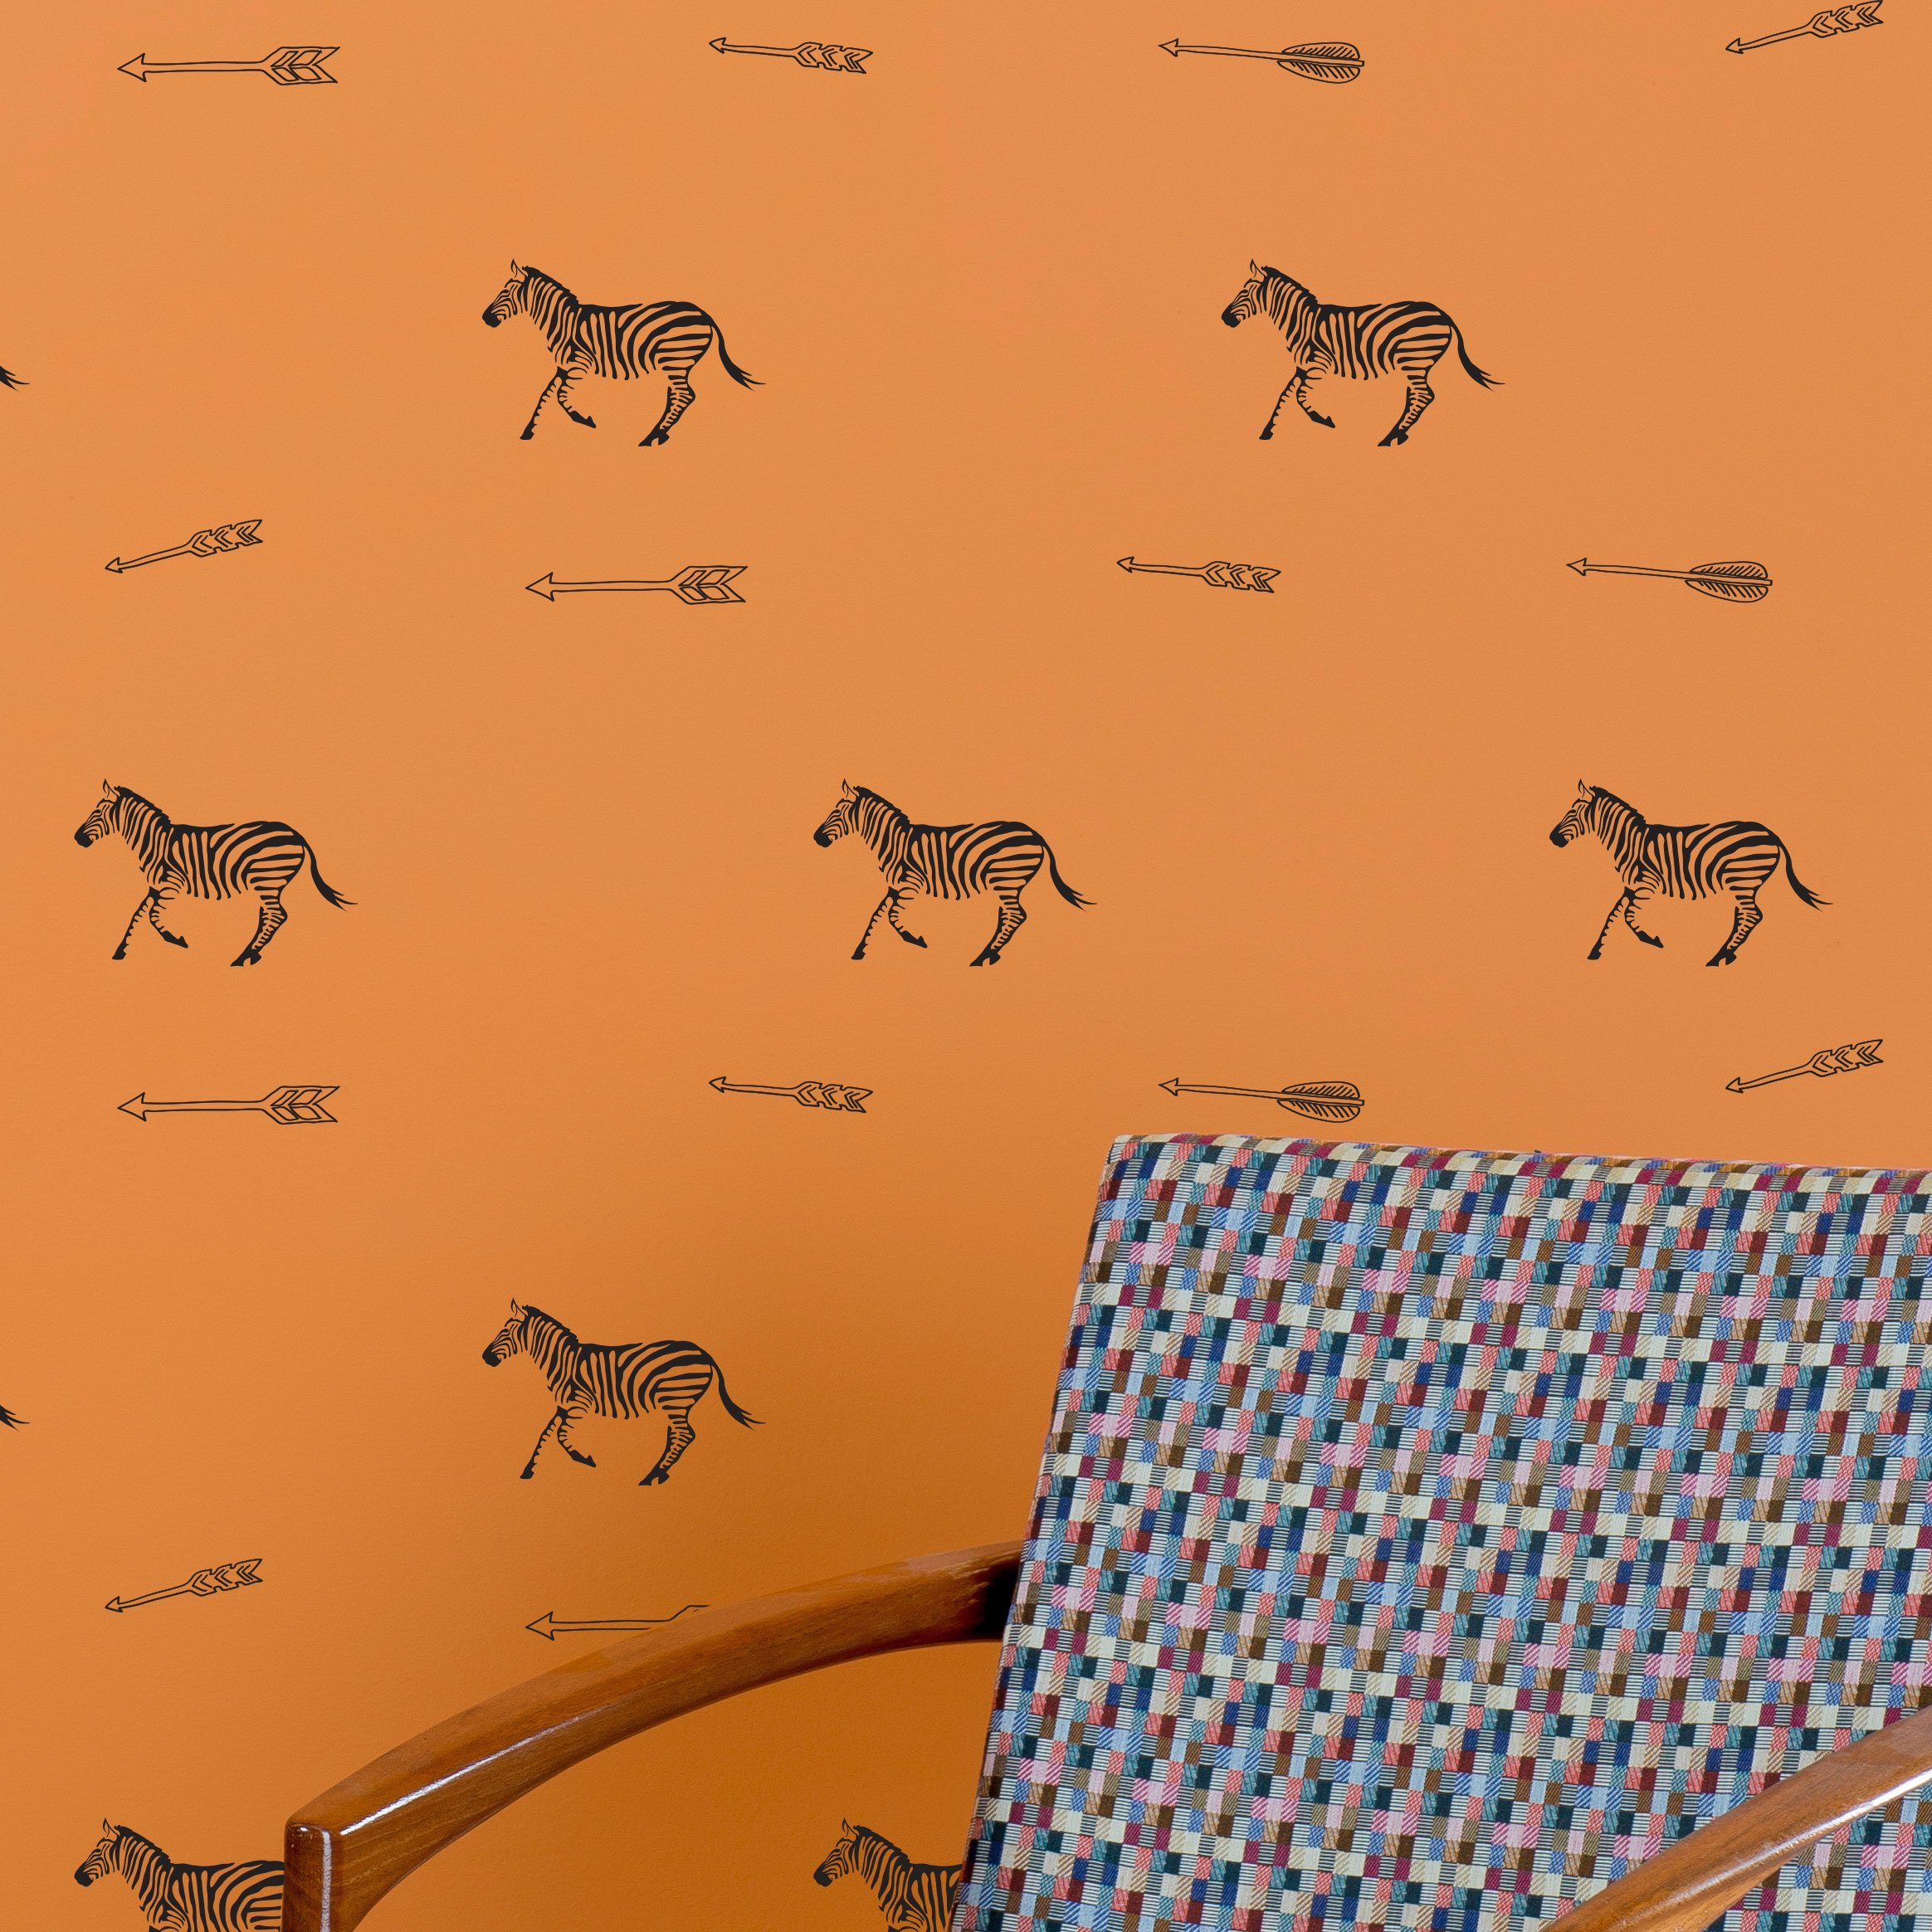 Zebras and Arrows Pattern - Vinyl Wall Art Decal for Homes, Offices, Kids Rooms, Nurseries, Schools, High Schools, Colleges, Universities, Interior Designers, Architects, Remodelers